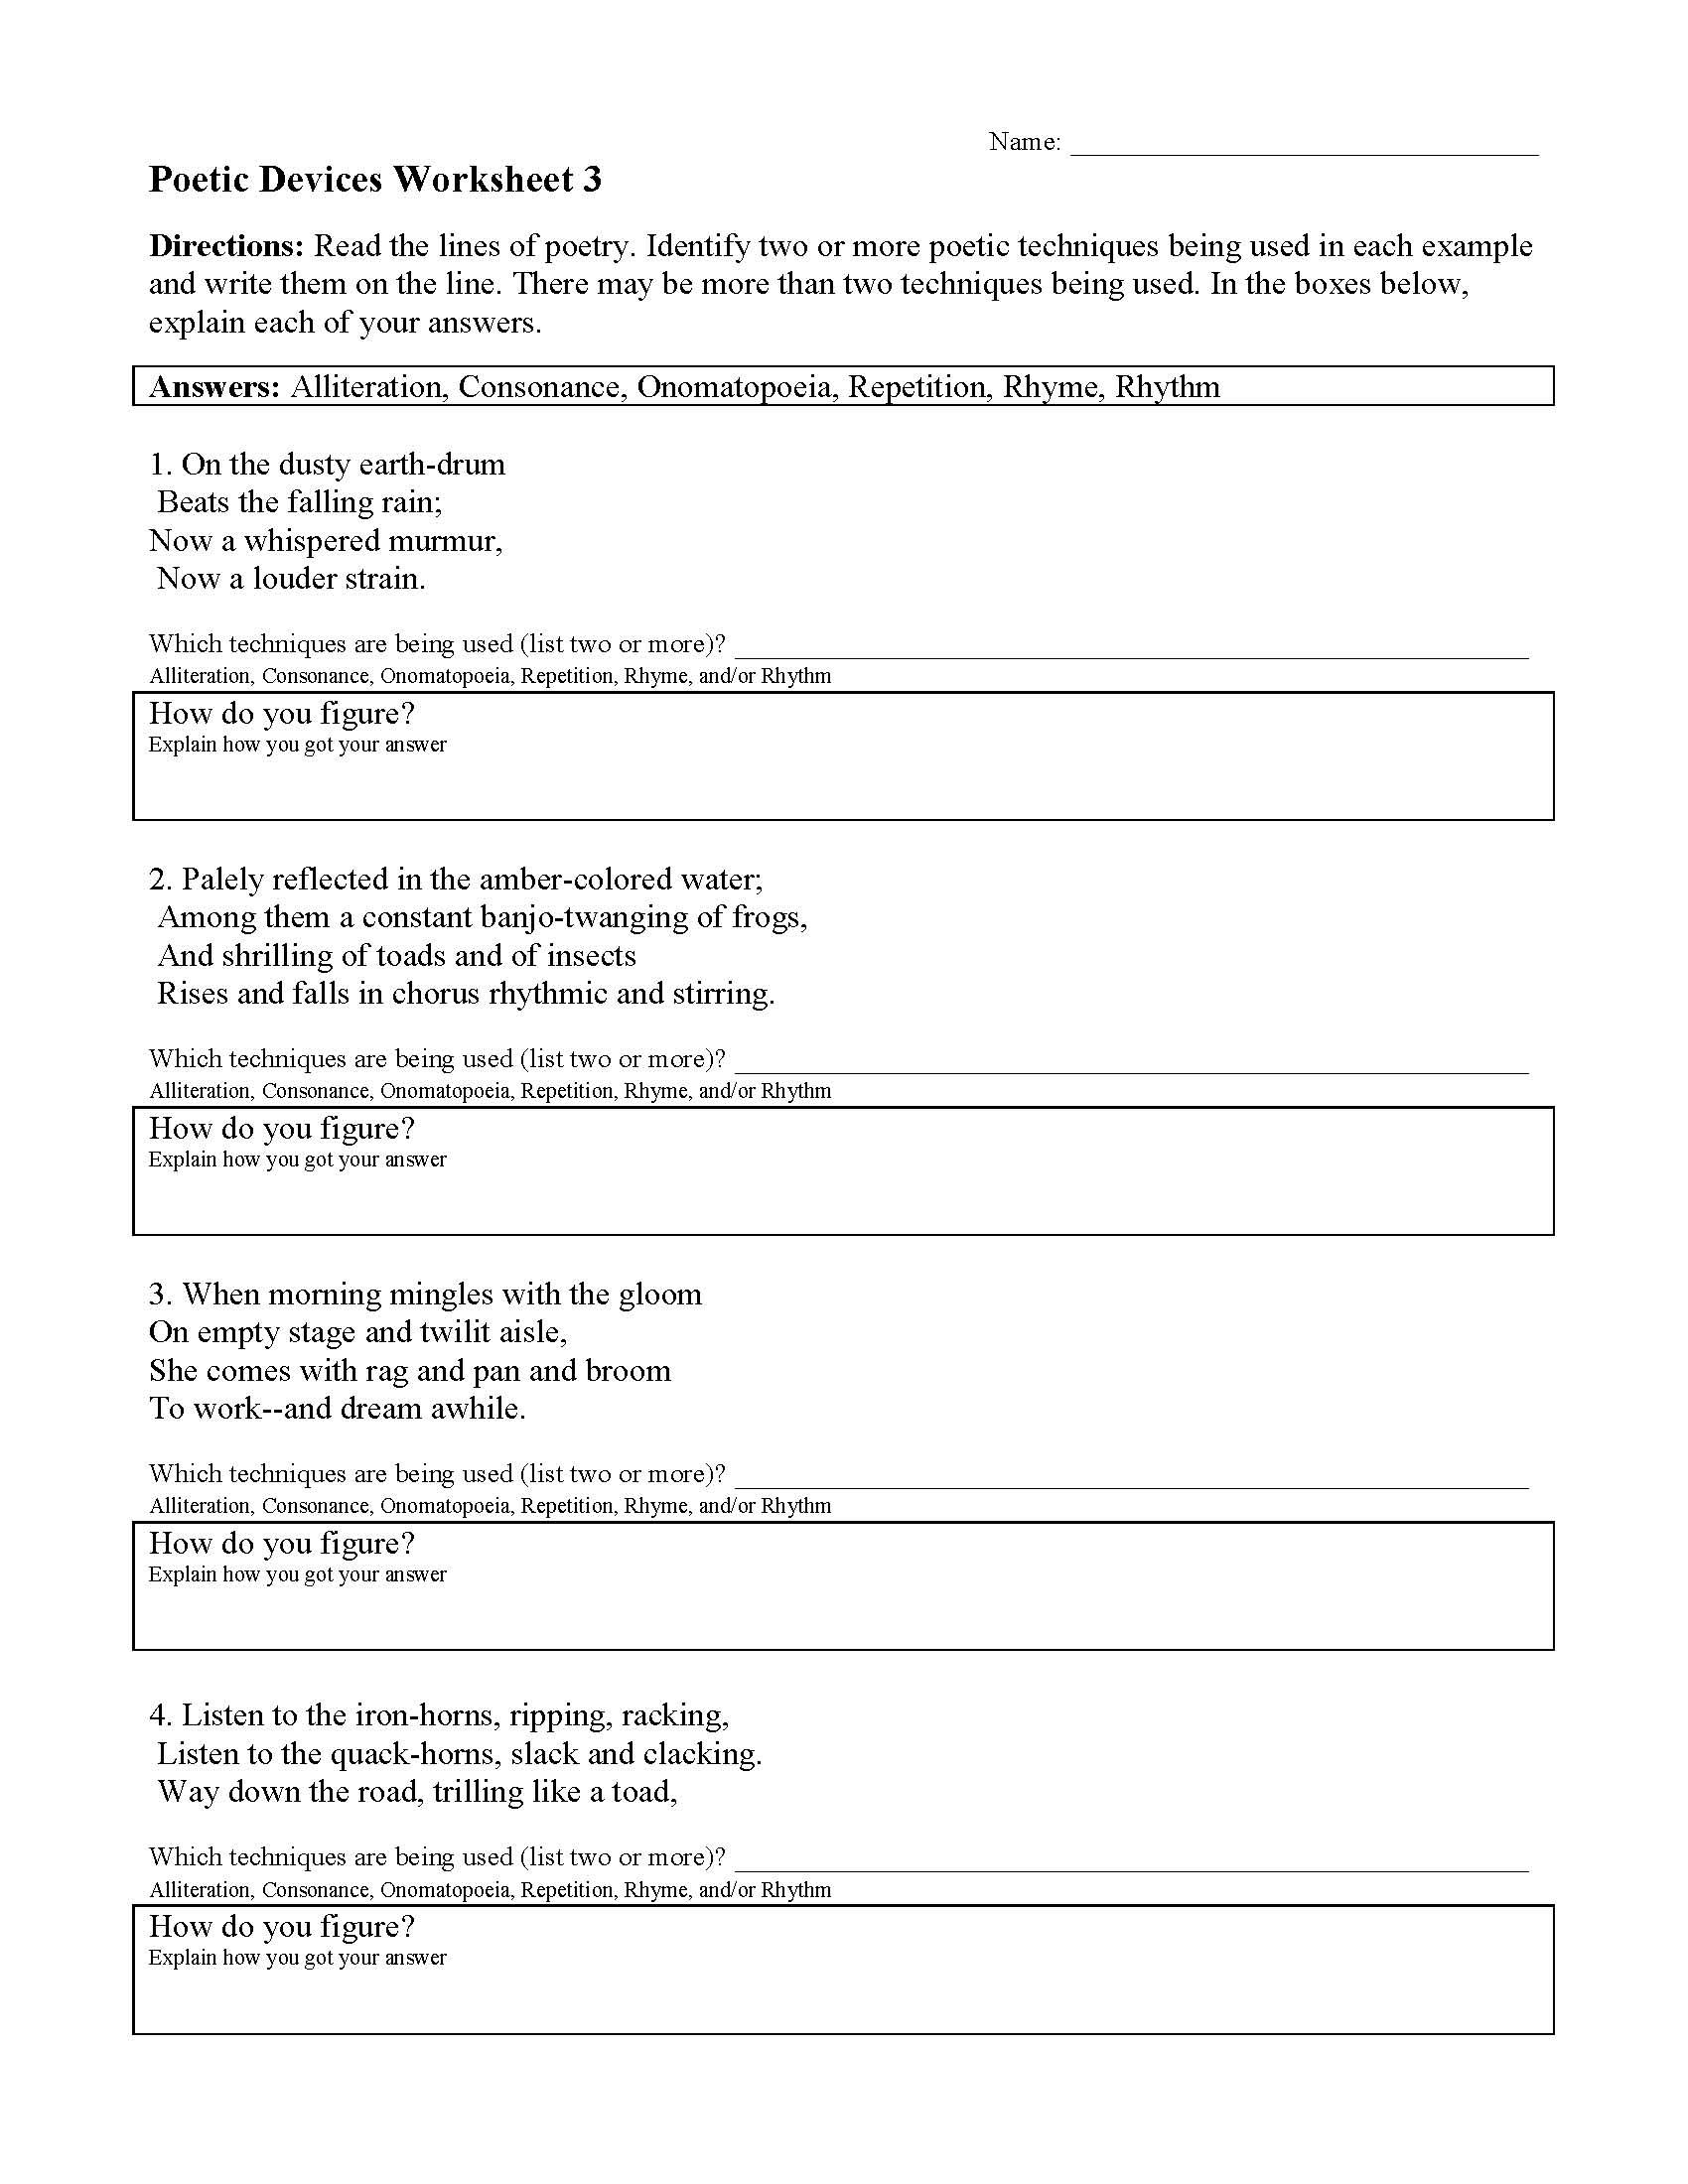 This Is A Preview Image Of The Poetic Devices Worksheet 3 Figurative Language Worksheet Language Worksheets Literal Equations